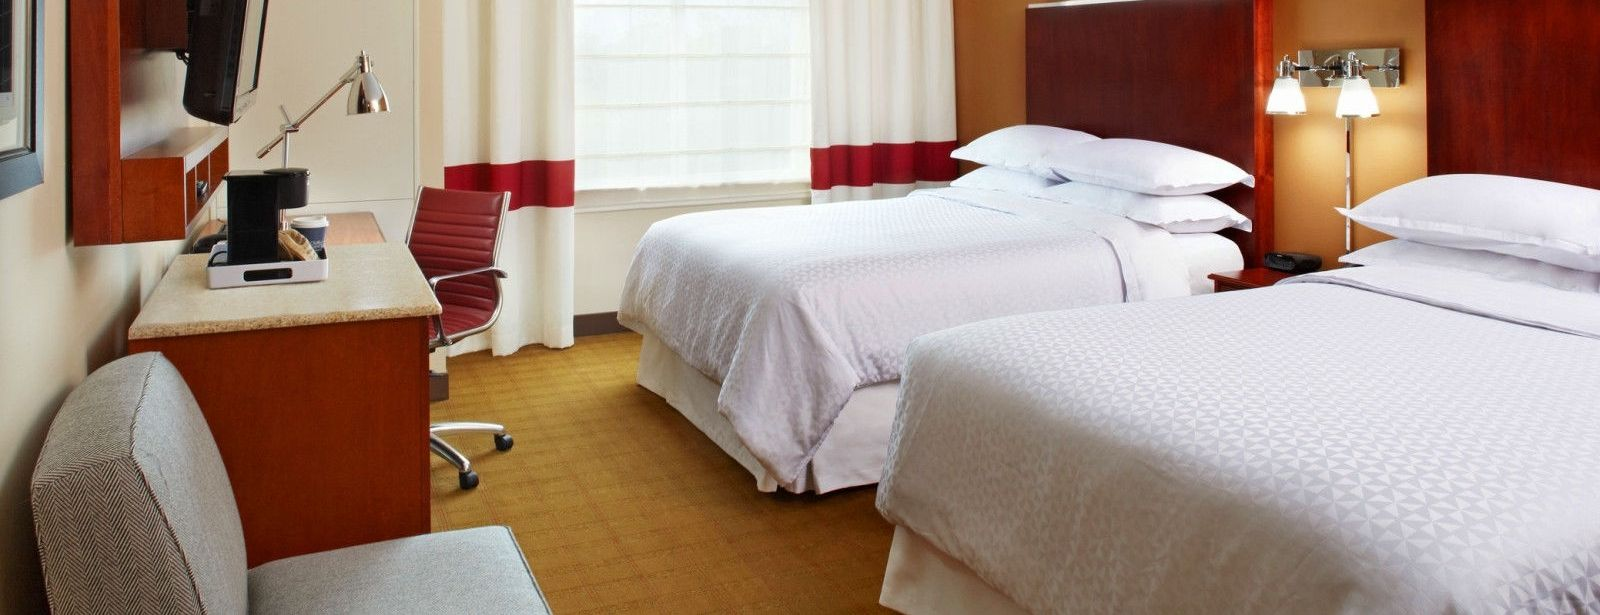 Houston Accommodations - Queen Room